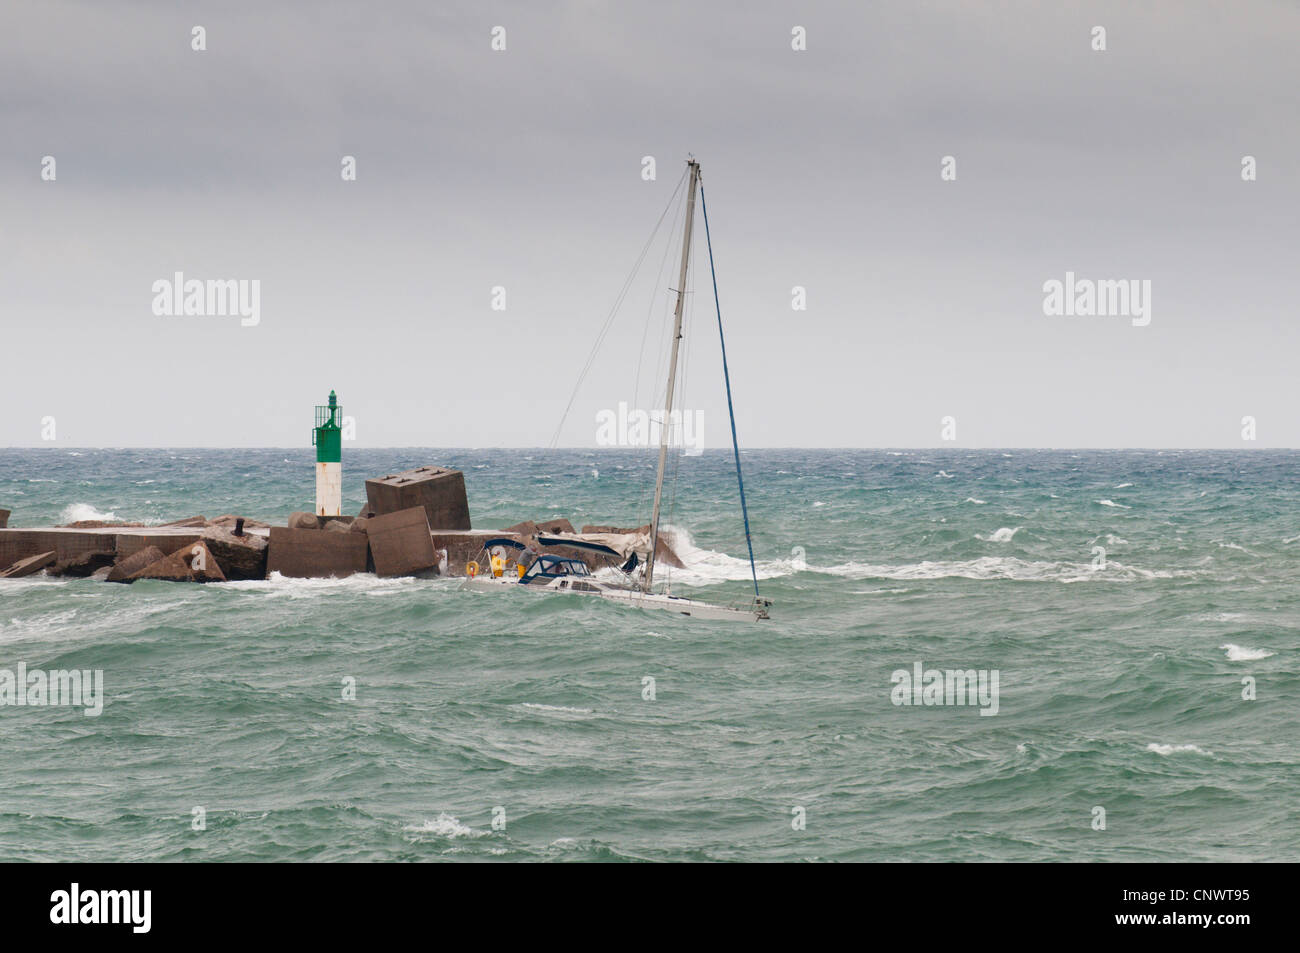 sailboat at stormy surge, in front of breakwaters with beacon, France, Languedoc-Roussillon, S�te - Stock Image